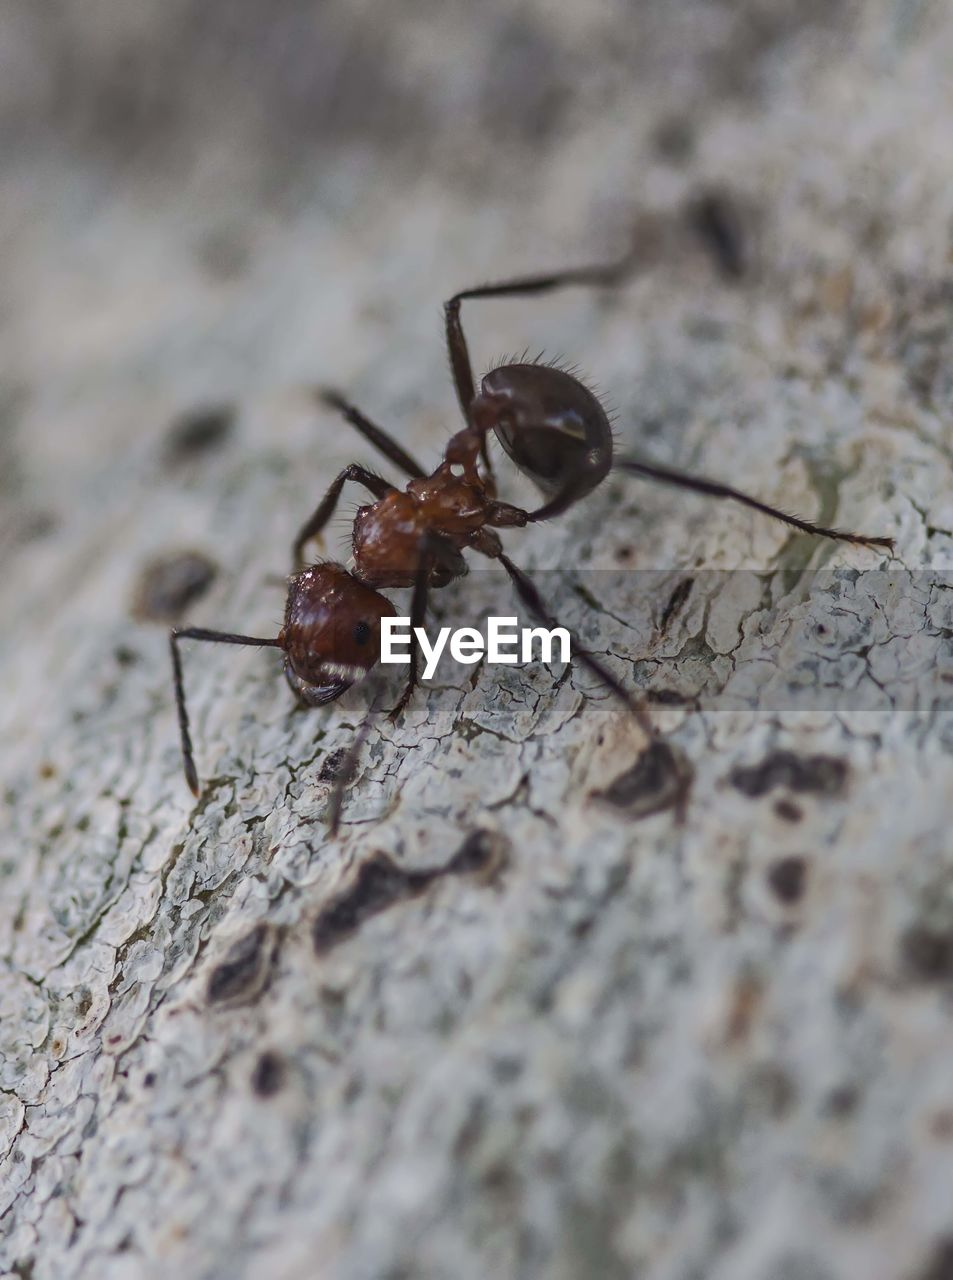 invertebrate, insect, animal, animal themes, animals in the wild, animal wildlife, one animal, selective focus, close-up, no people, zoology, animal body part, ant, nature, day, outdoors, full length, arthropod, animal antenna